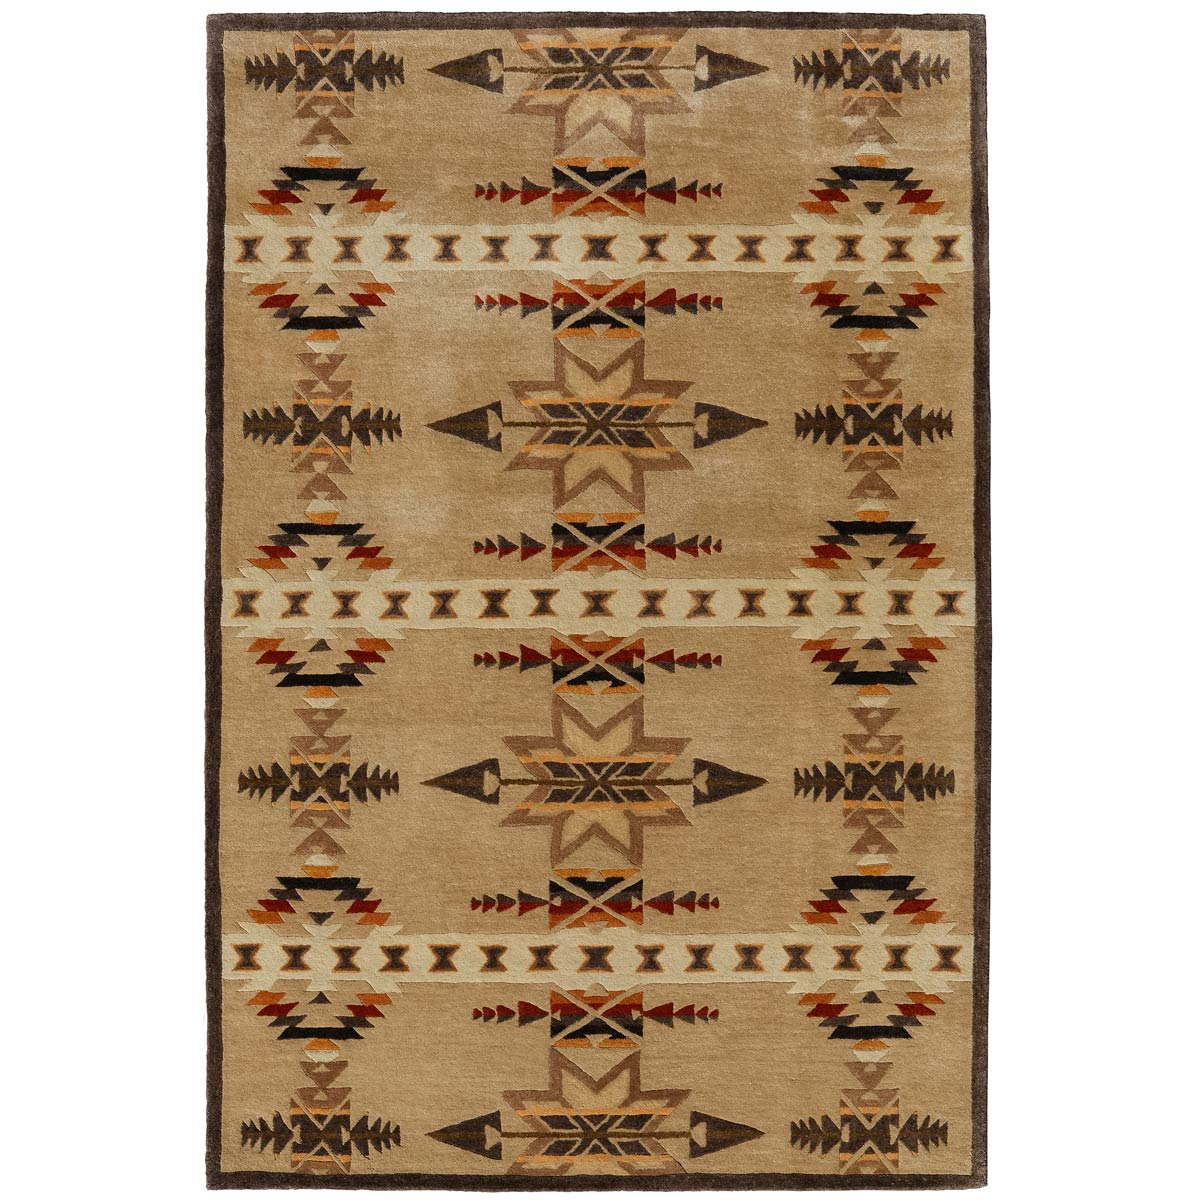 Gatekeeper Neutral Rug - 5 x 7